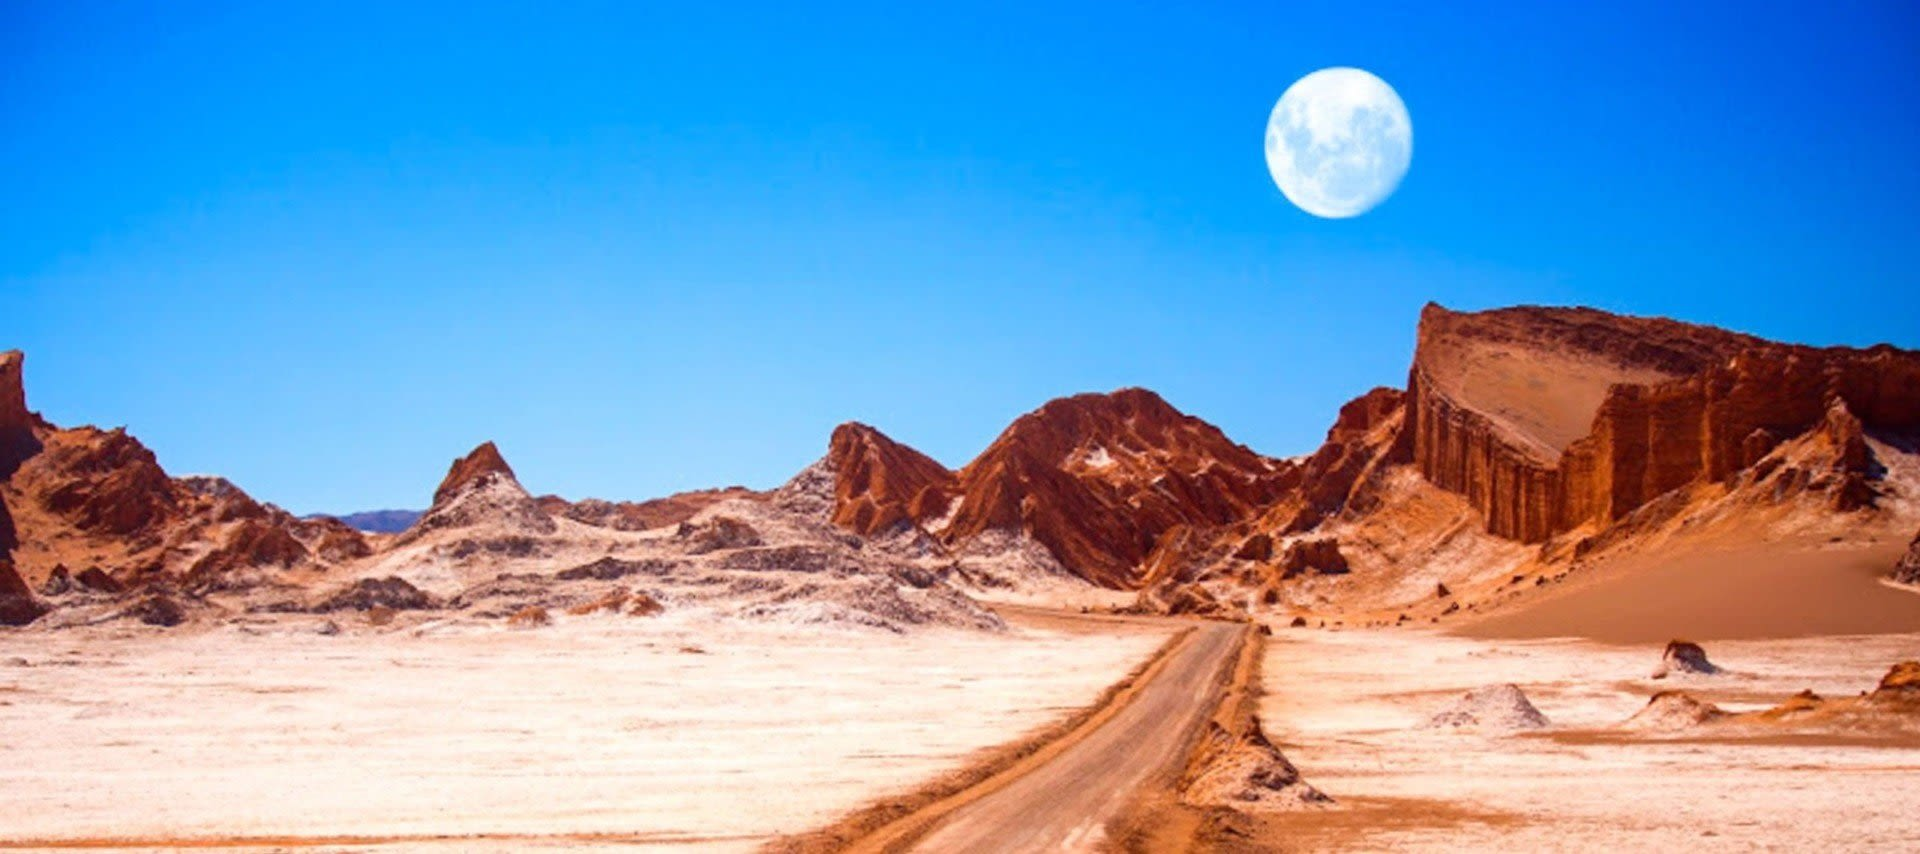 Full moon hangs over Atacama Desert